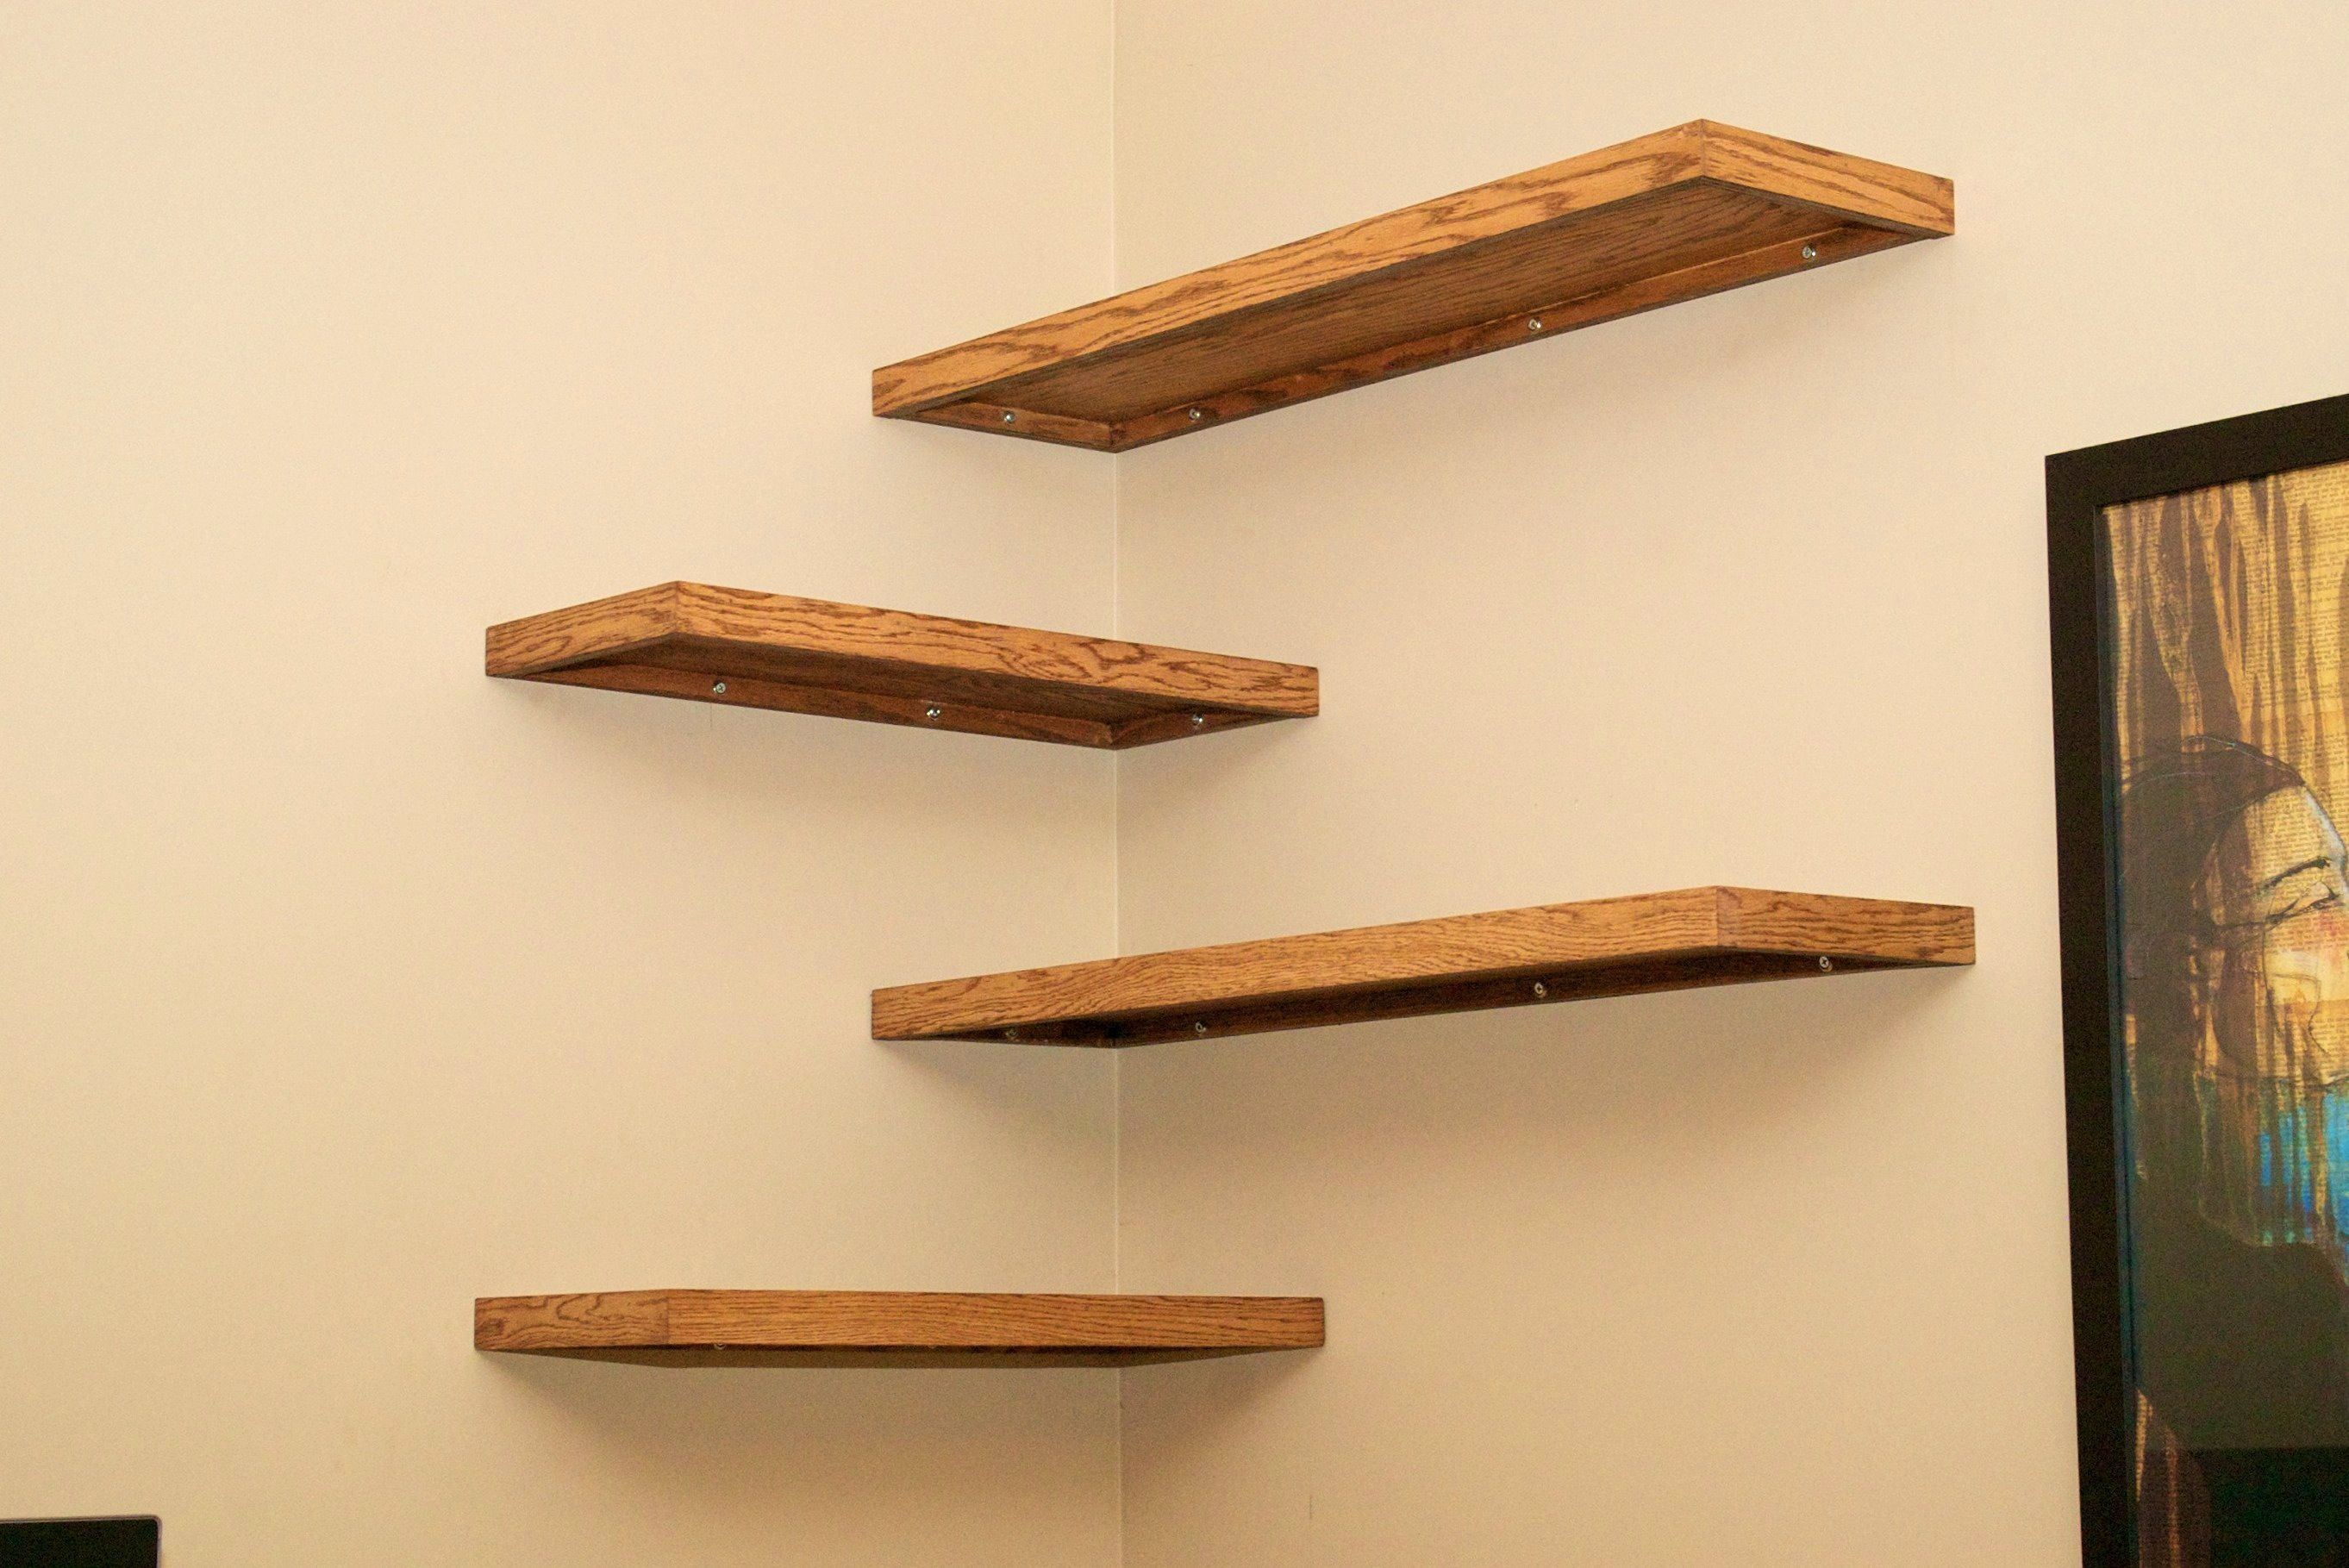 Agreeable Diy Floating Shelves How Build These Make Shelf Ideas ...